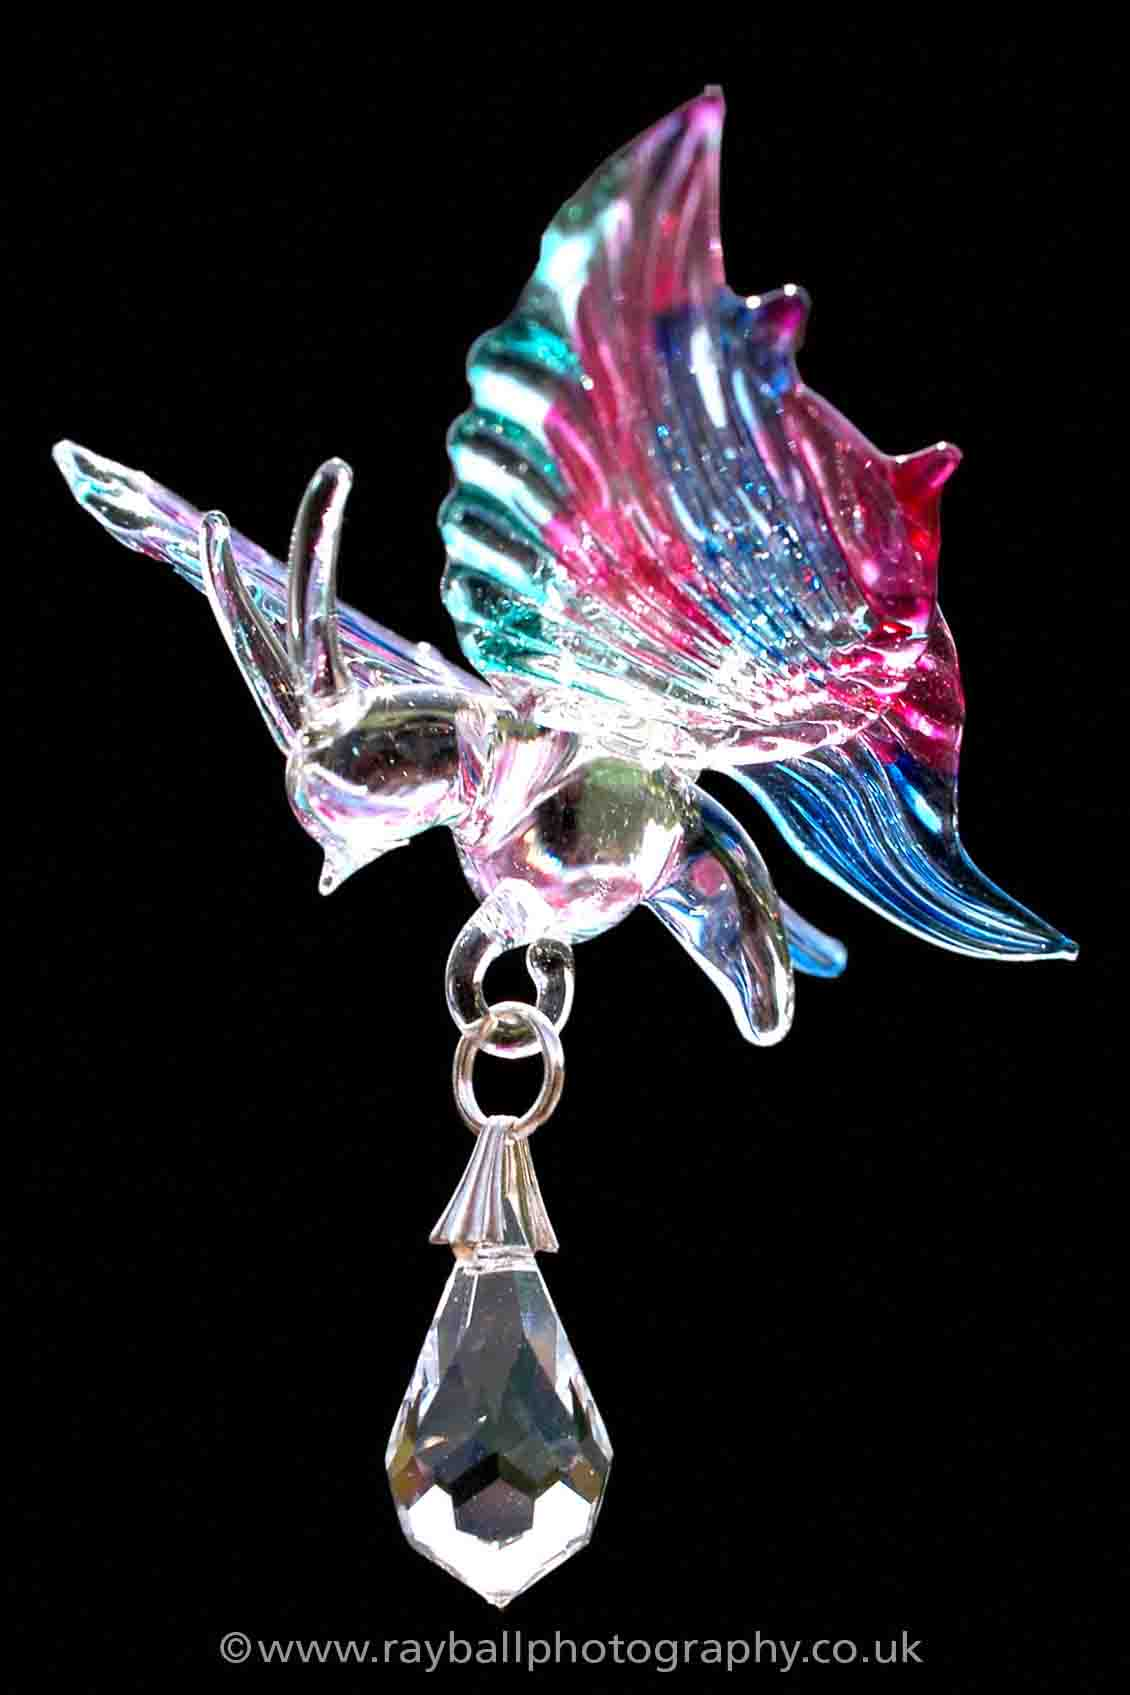 commercial-photograph-of-pretty-glass-pendant-from-Oxshott-Surrey-by-Epsom-Photography. Epsom